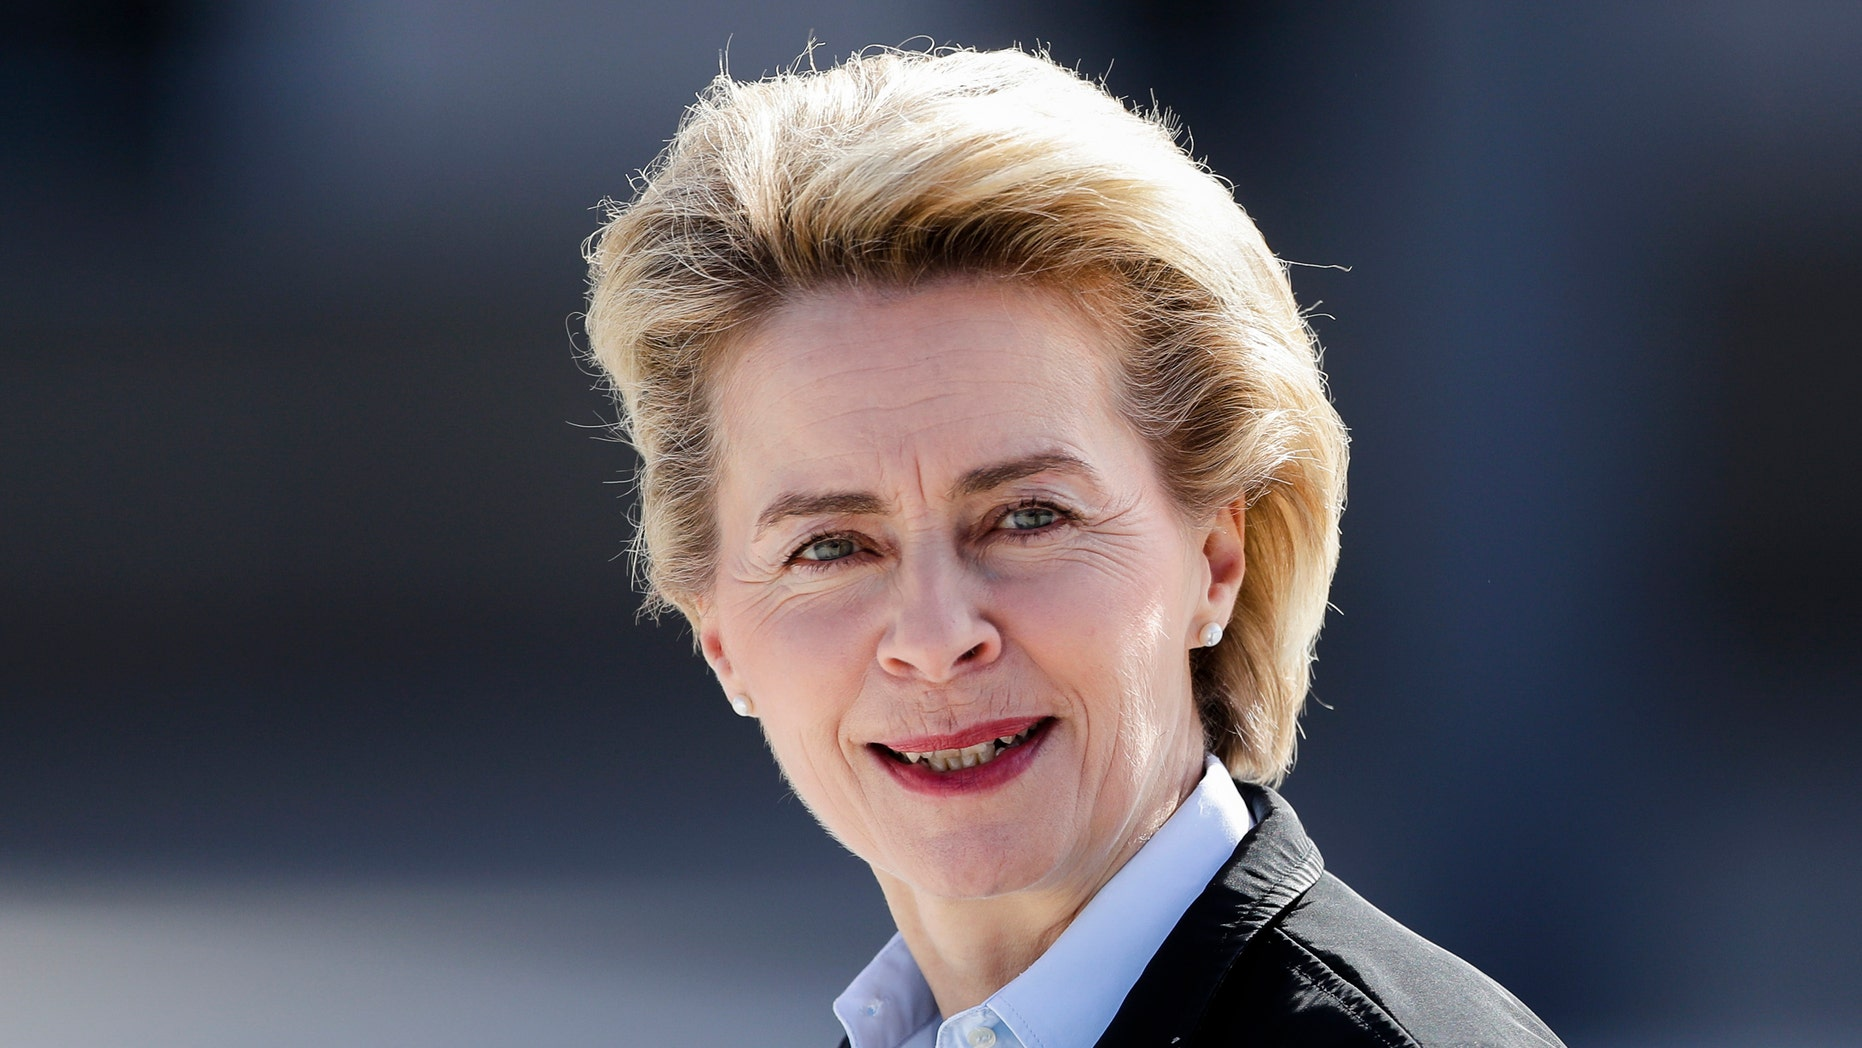 Ursula von der Leyen, a surprise choice to become the next head of the European Commission, is a strong supporter of closer European cooperation who has been Germany's defense minister since 2013. (AP Photo/Markus Schreiber, file)